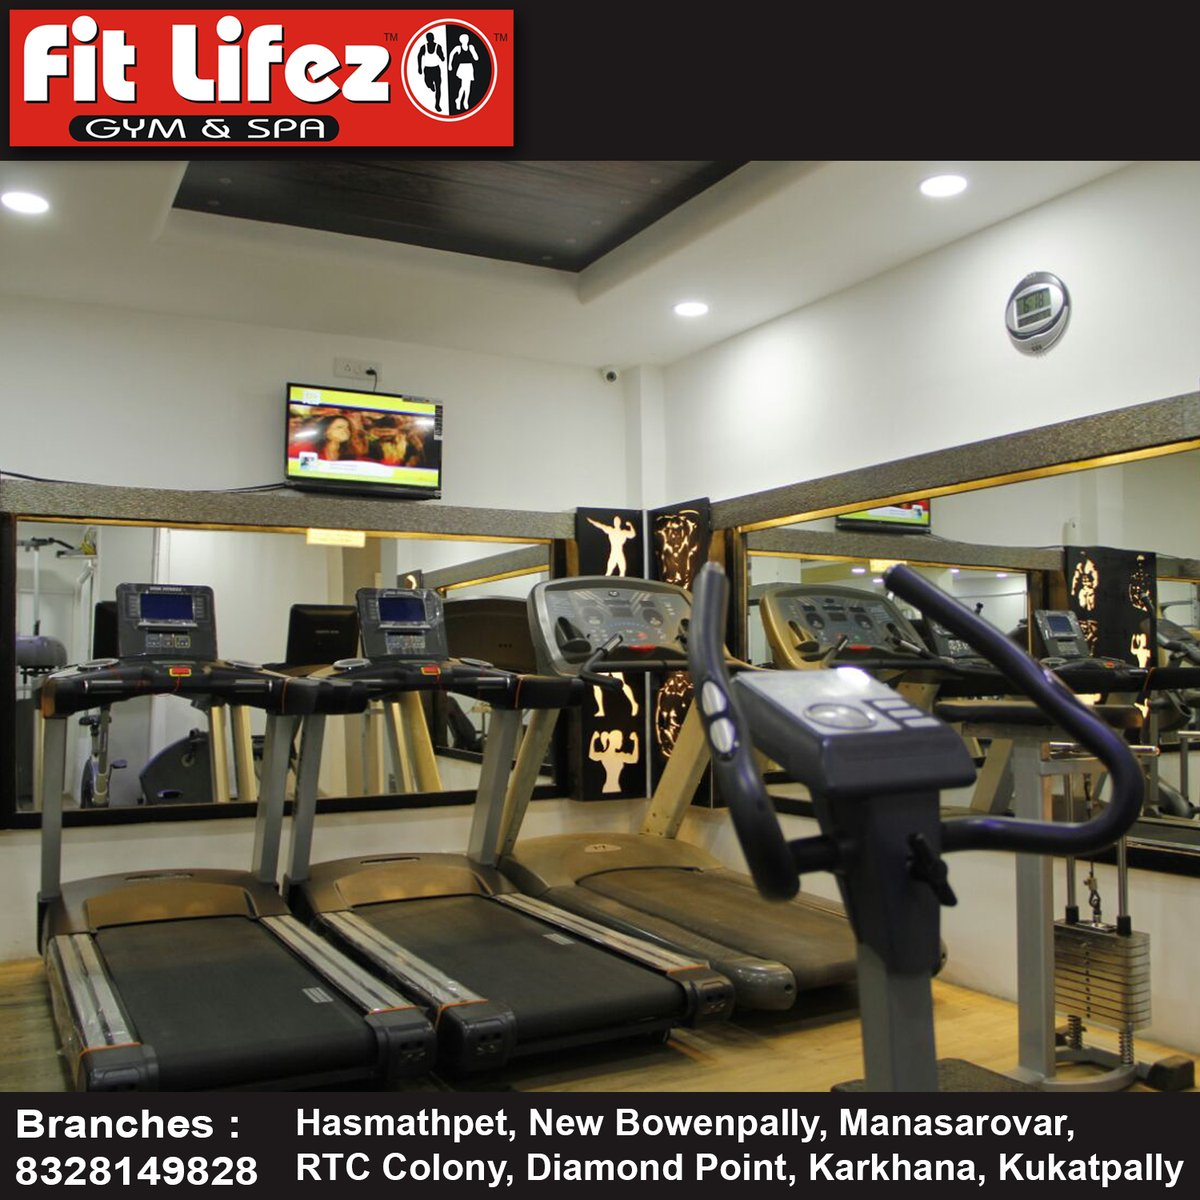 Join us for #fitness activities: Fitlifez Gym and Spa Call us for more details: 8328149828 #Fitlifez #Gym #Spa